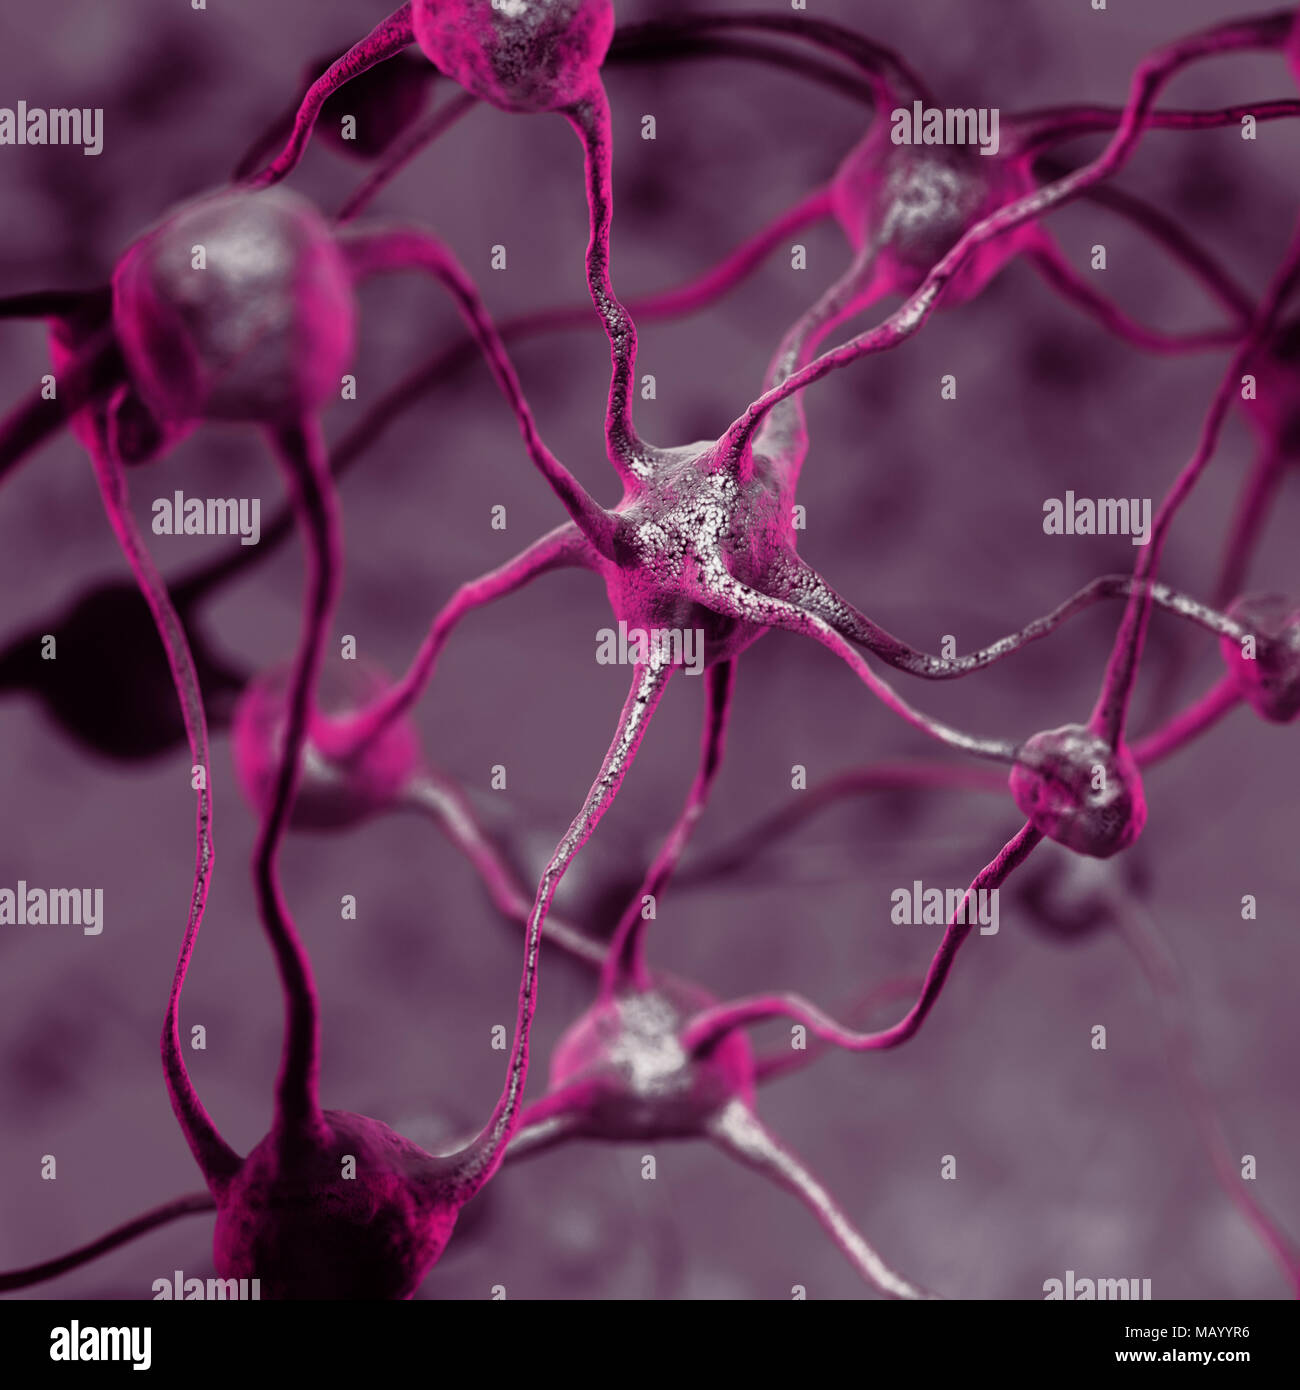 3D illustration of a Biological Neural network of a human brain, interconnected neurons, brain cells and connections, computer - Stock Image